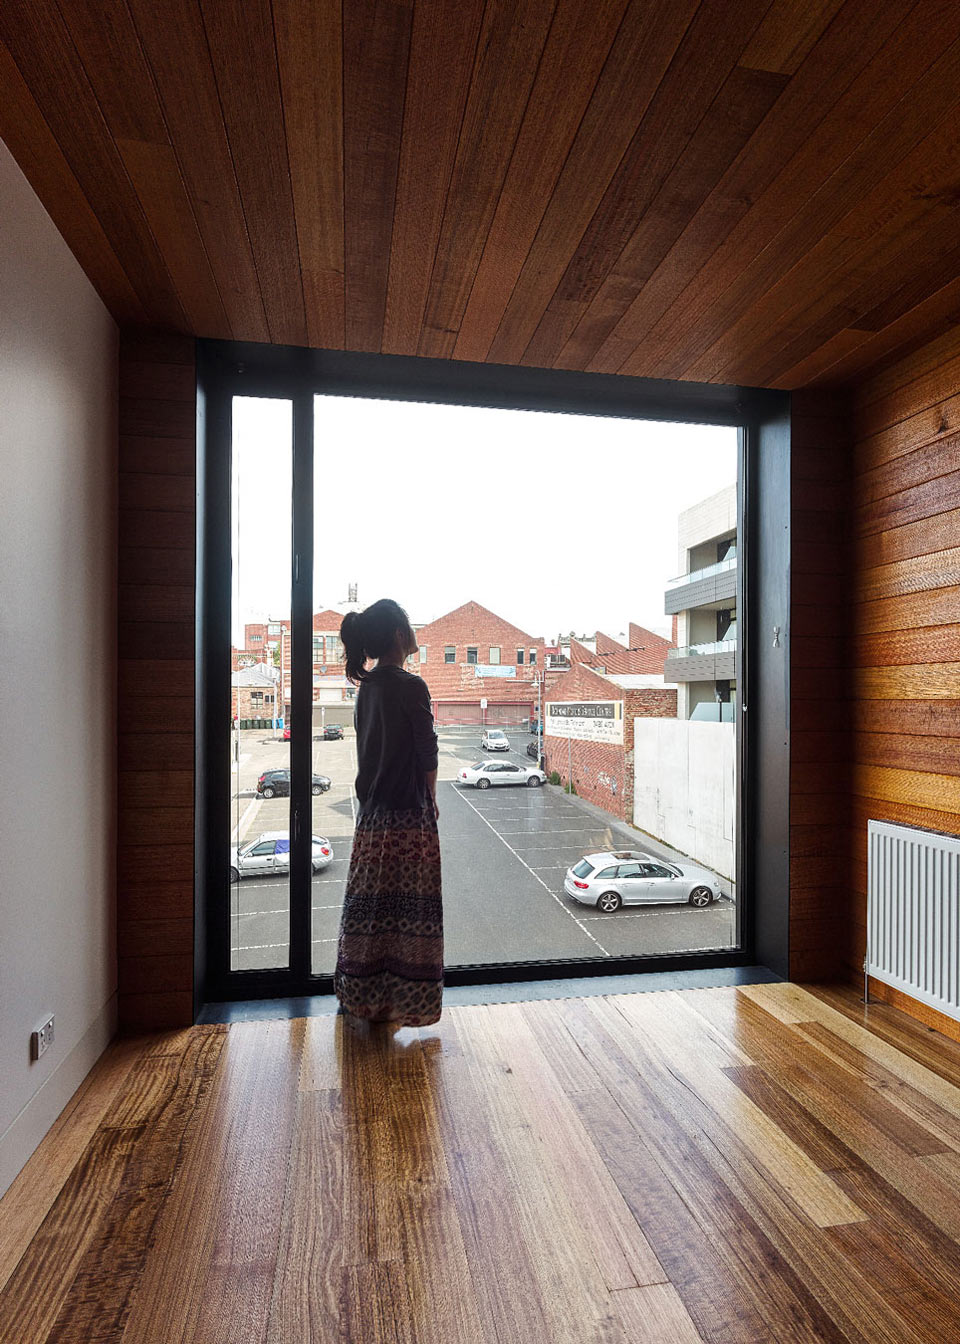 Large Window, Two-Home Extension Within a Single Building in Richmond, Australia